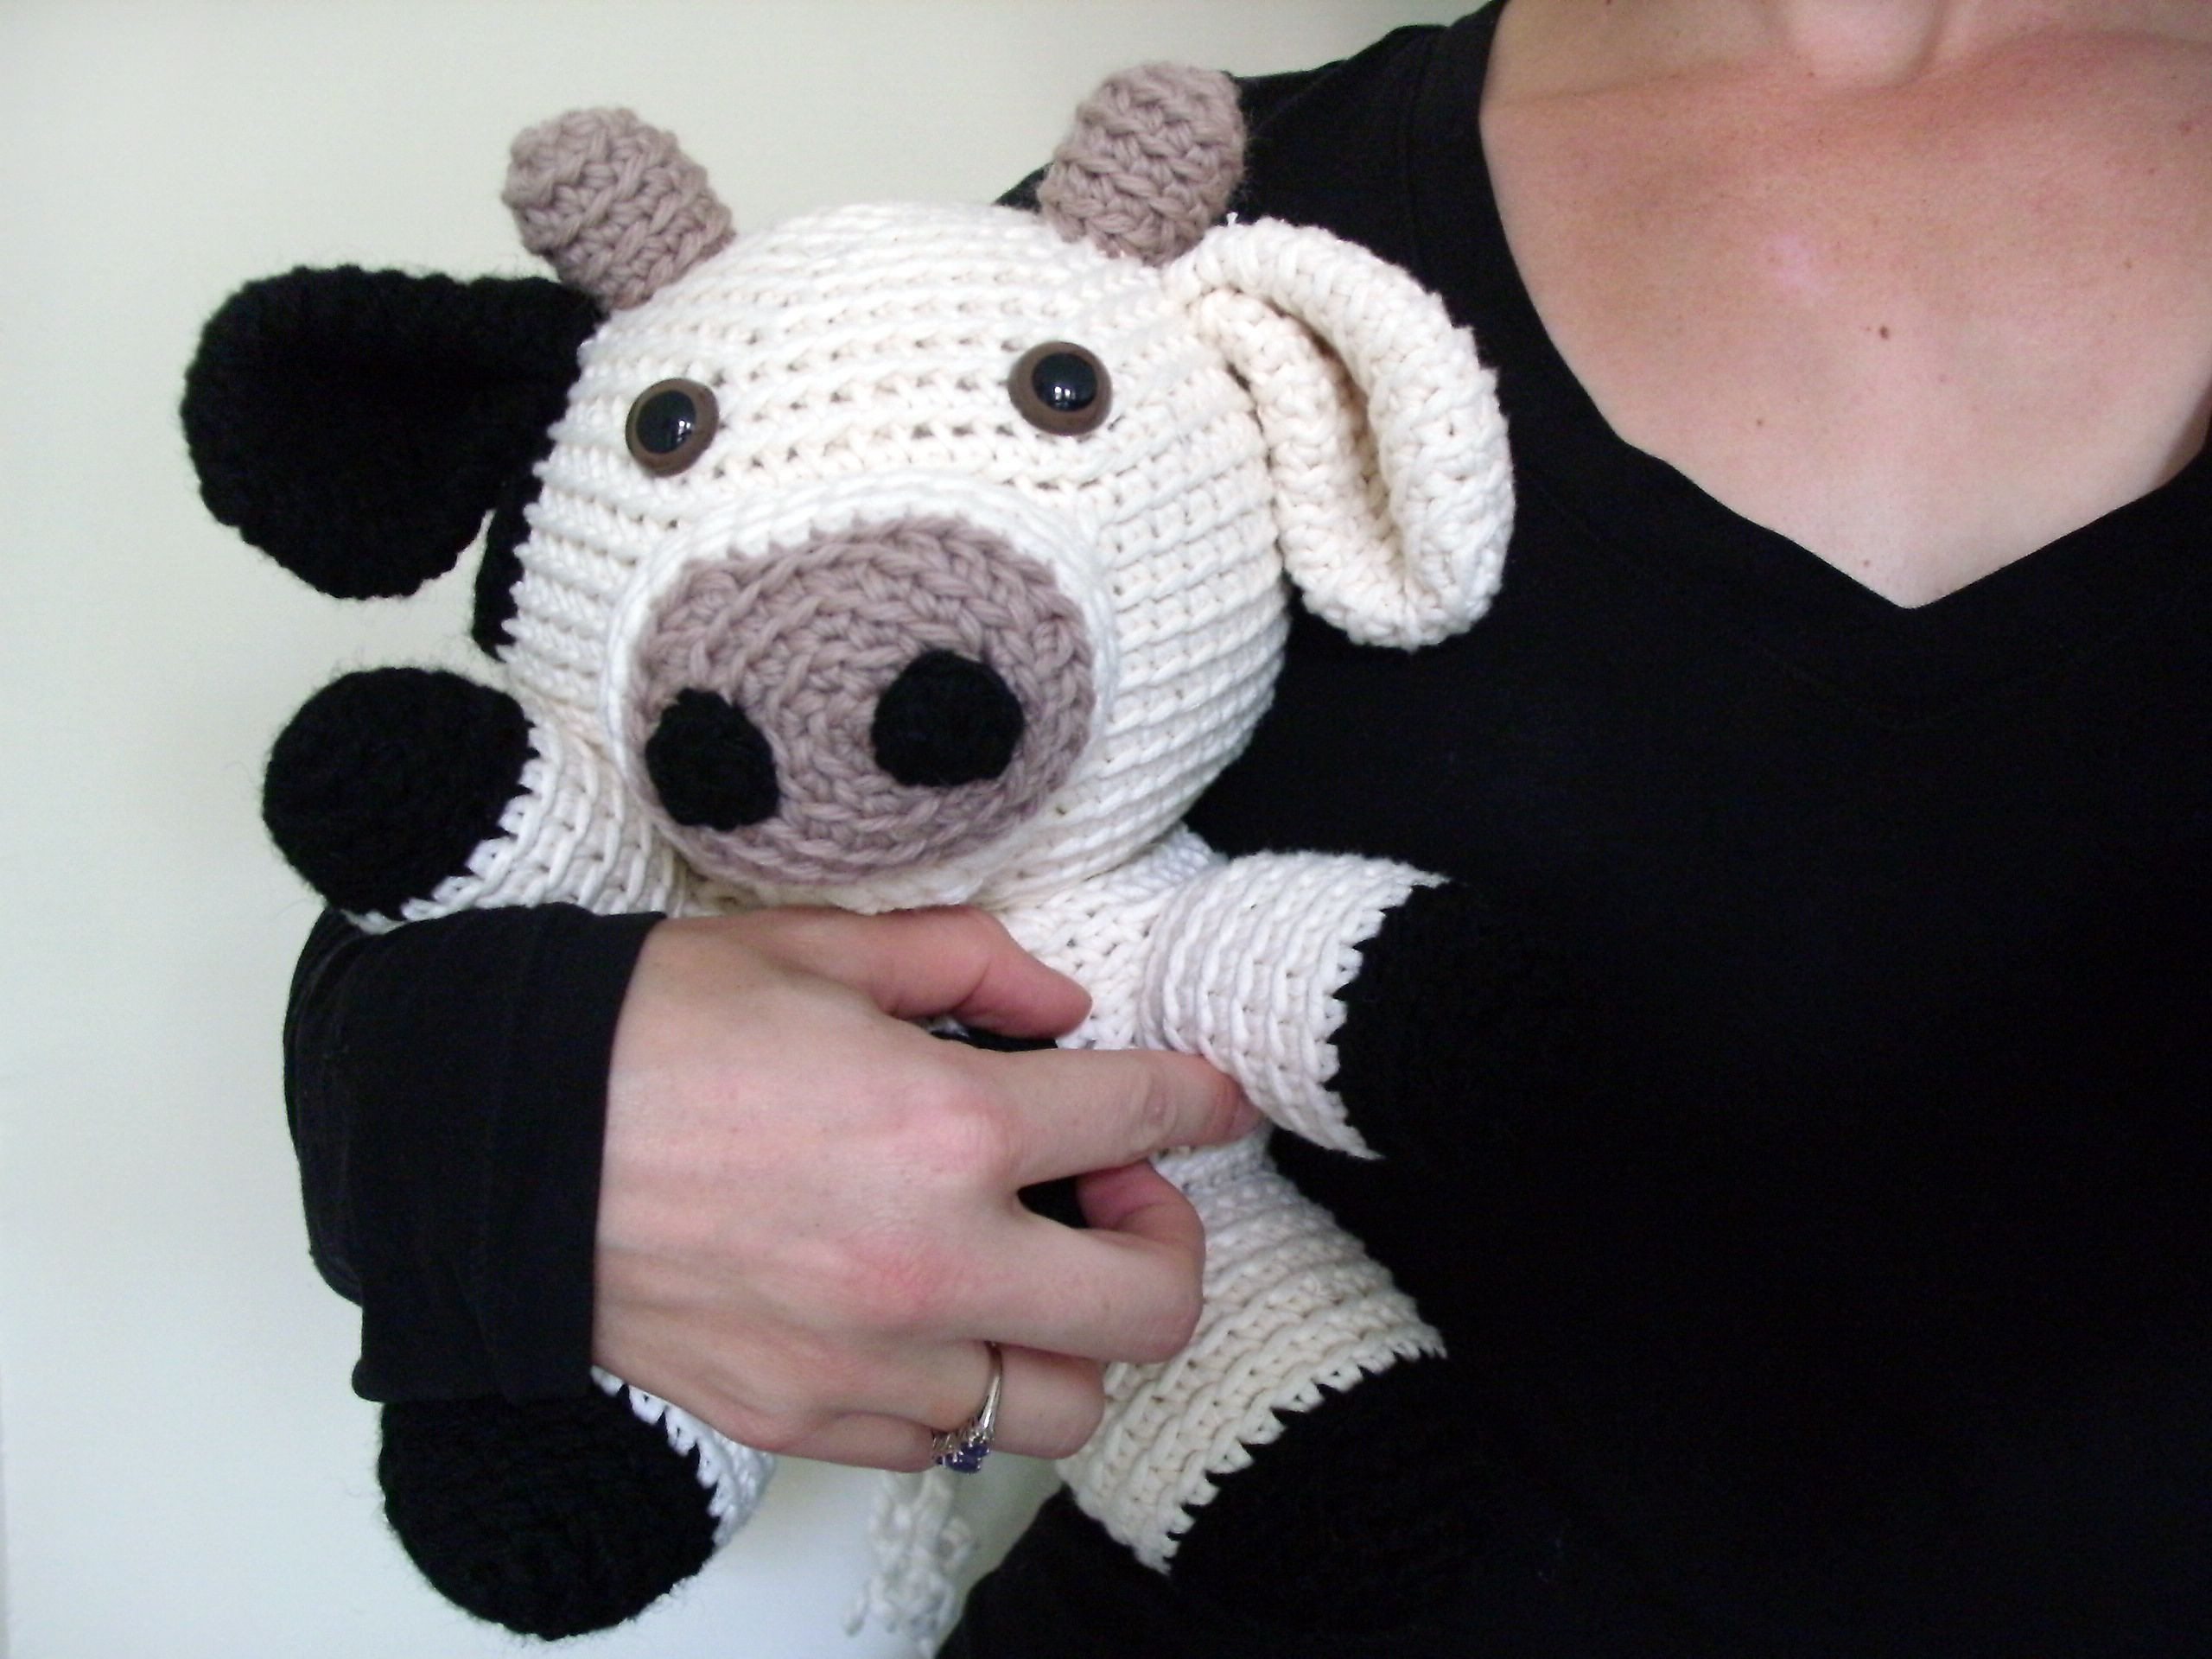 Free Crochet Animal Patterns Elegant Amigurumi Jackie the Cow Pattern by Stacey Trock Of Attractive 49 Pictures Free Crochet Animal Patterns